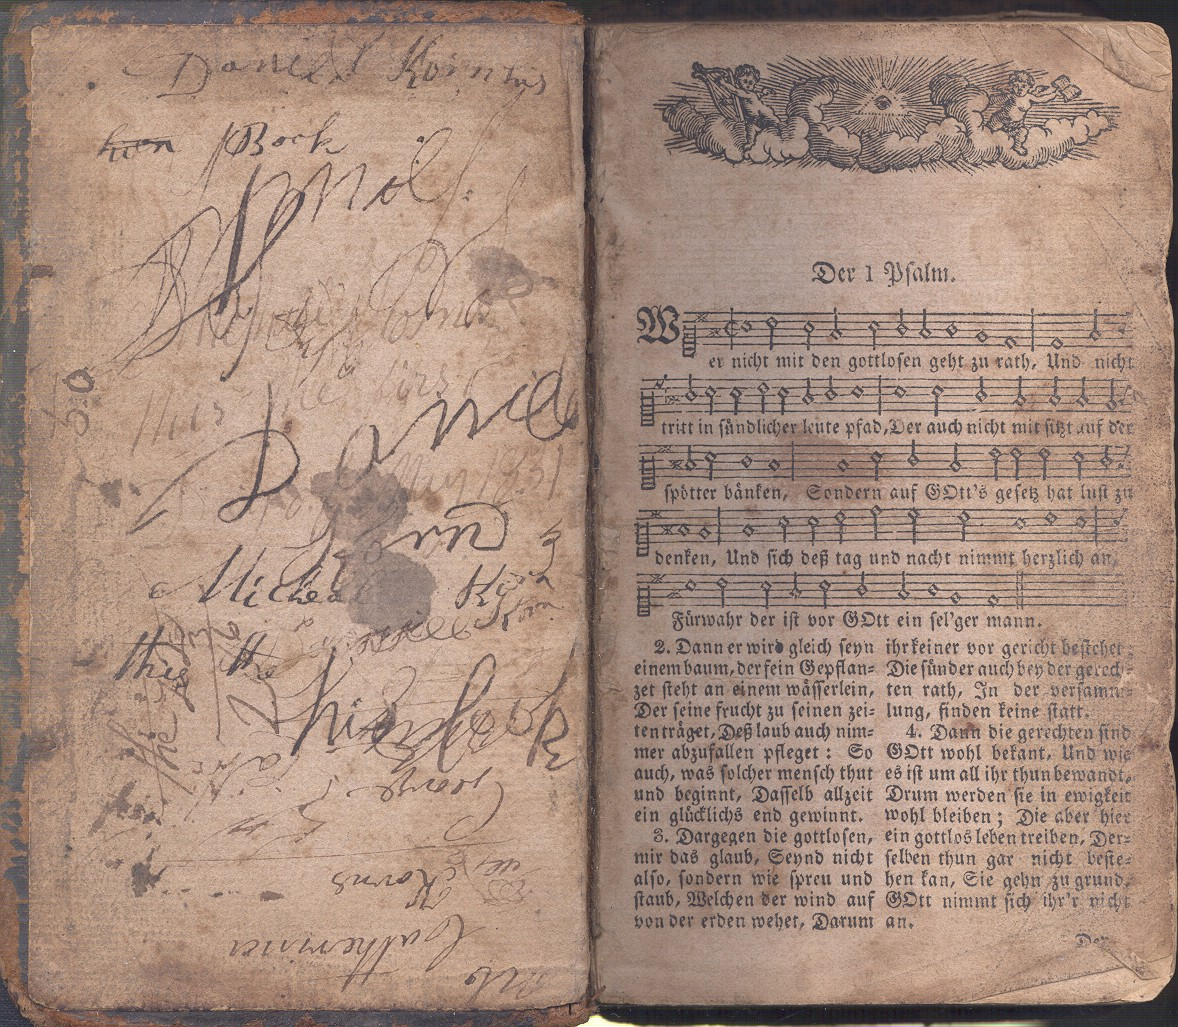 Psalm Book that belonged to Daniel Korn of Southampton Township, Somerset County, PA.